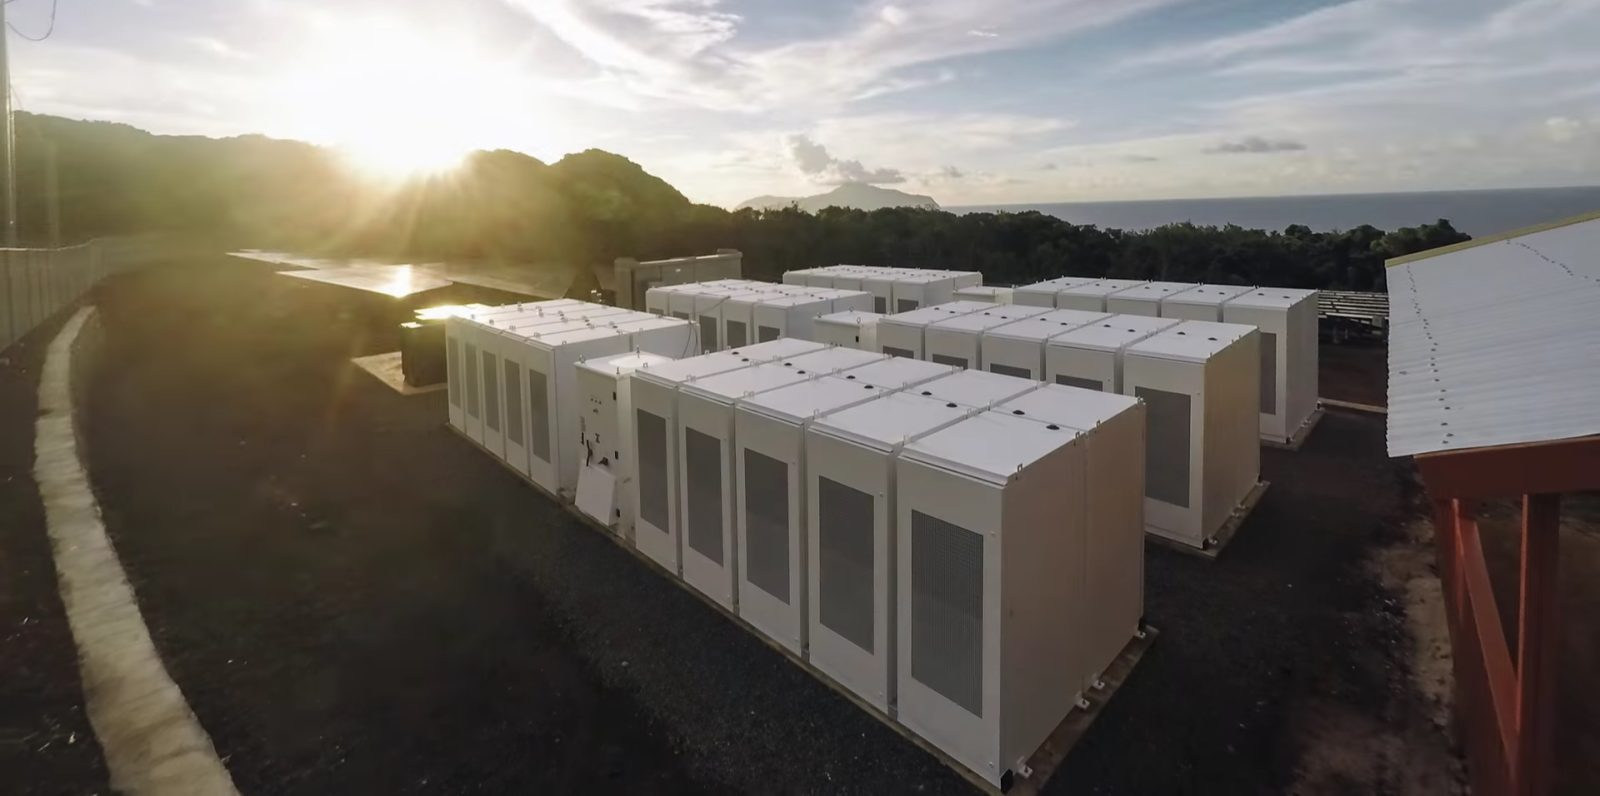 Tesla Deploys New Microgrid Projects With Powerpacks In